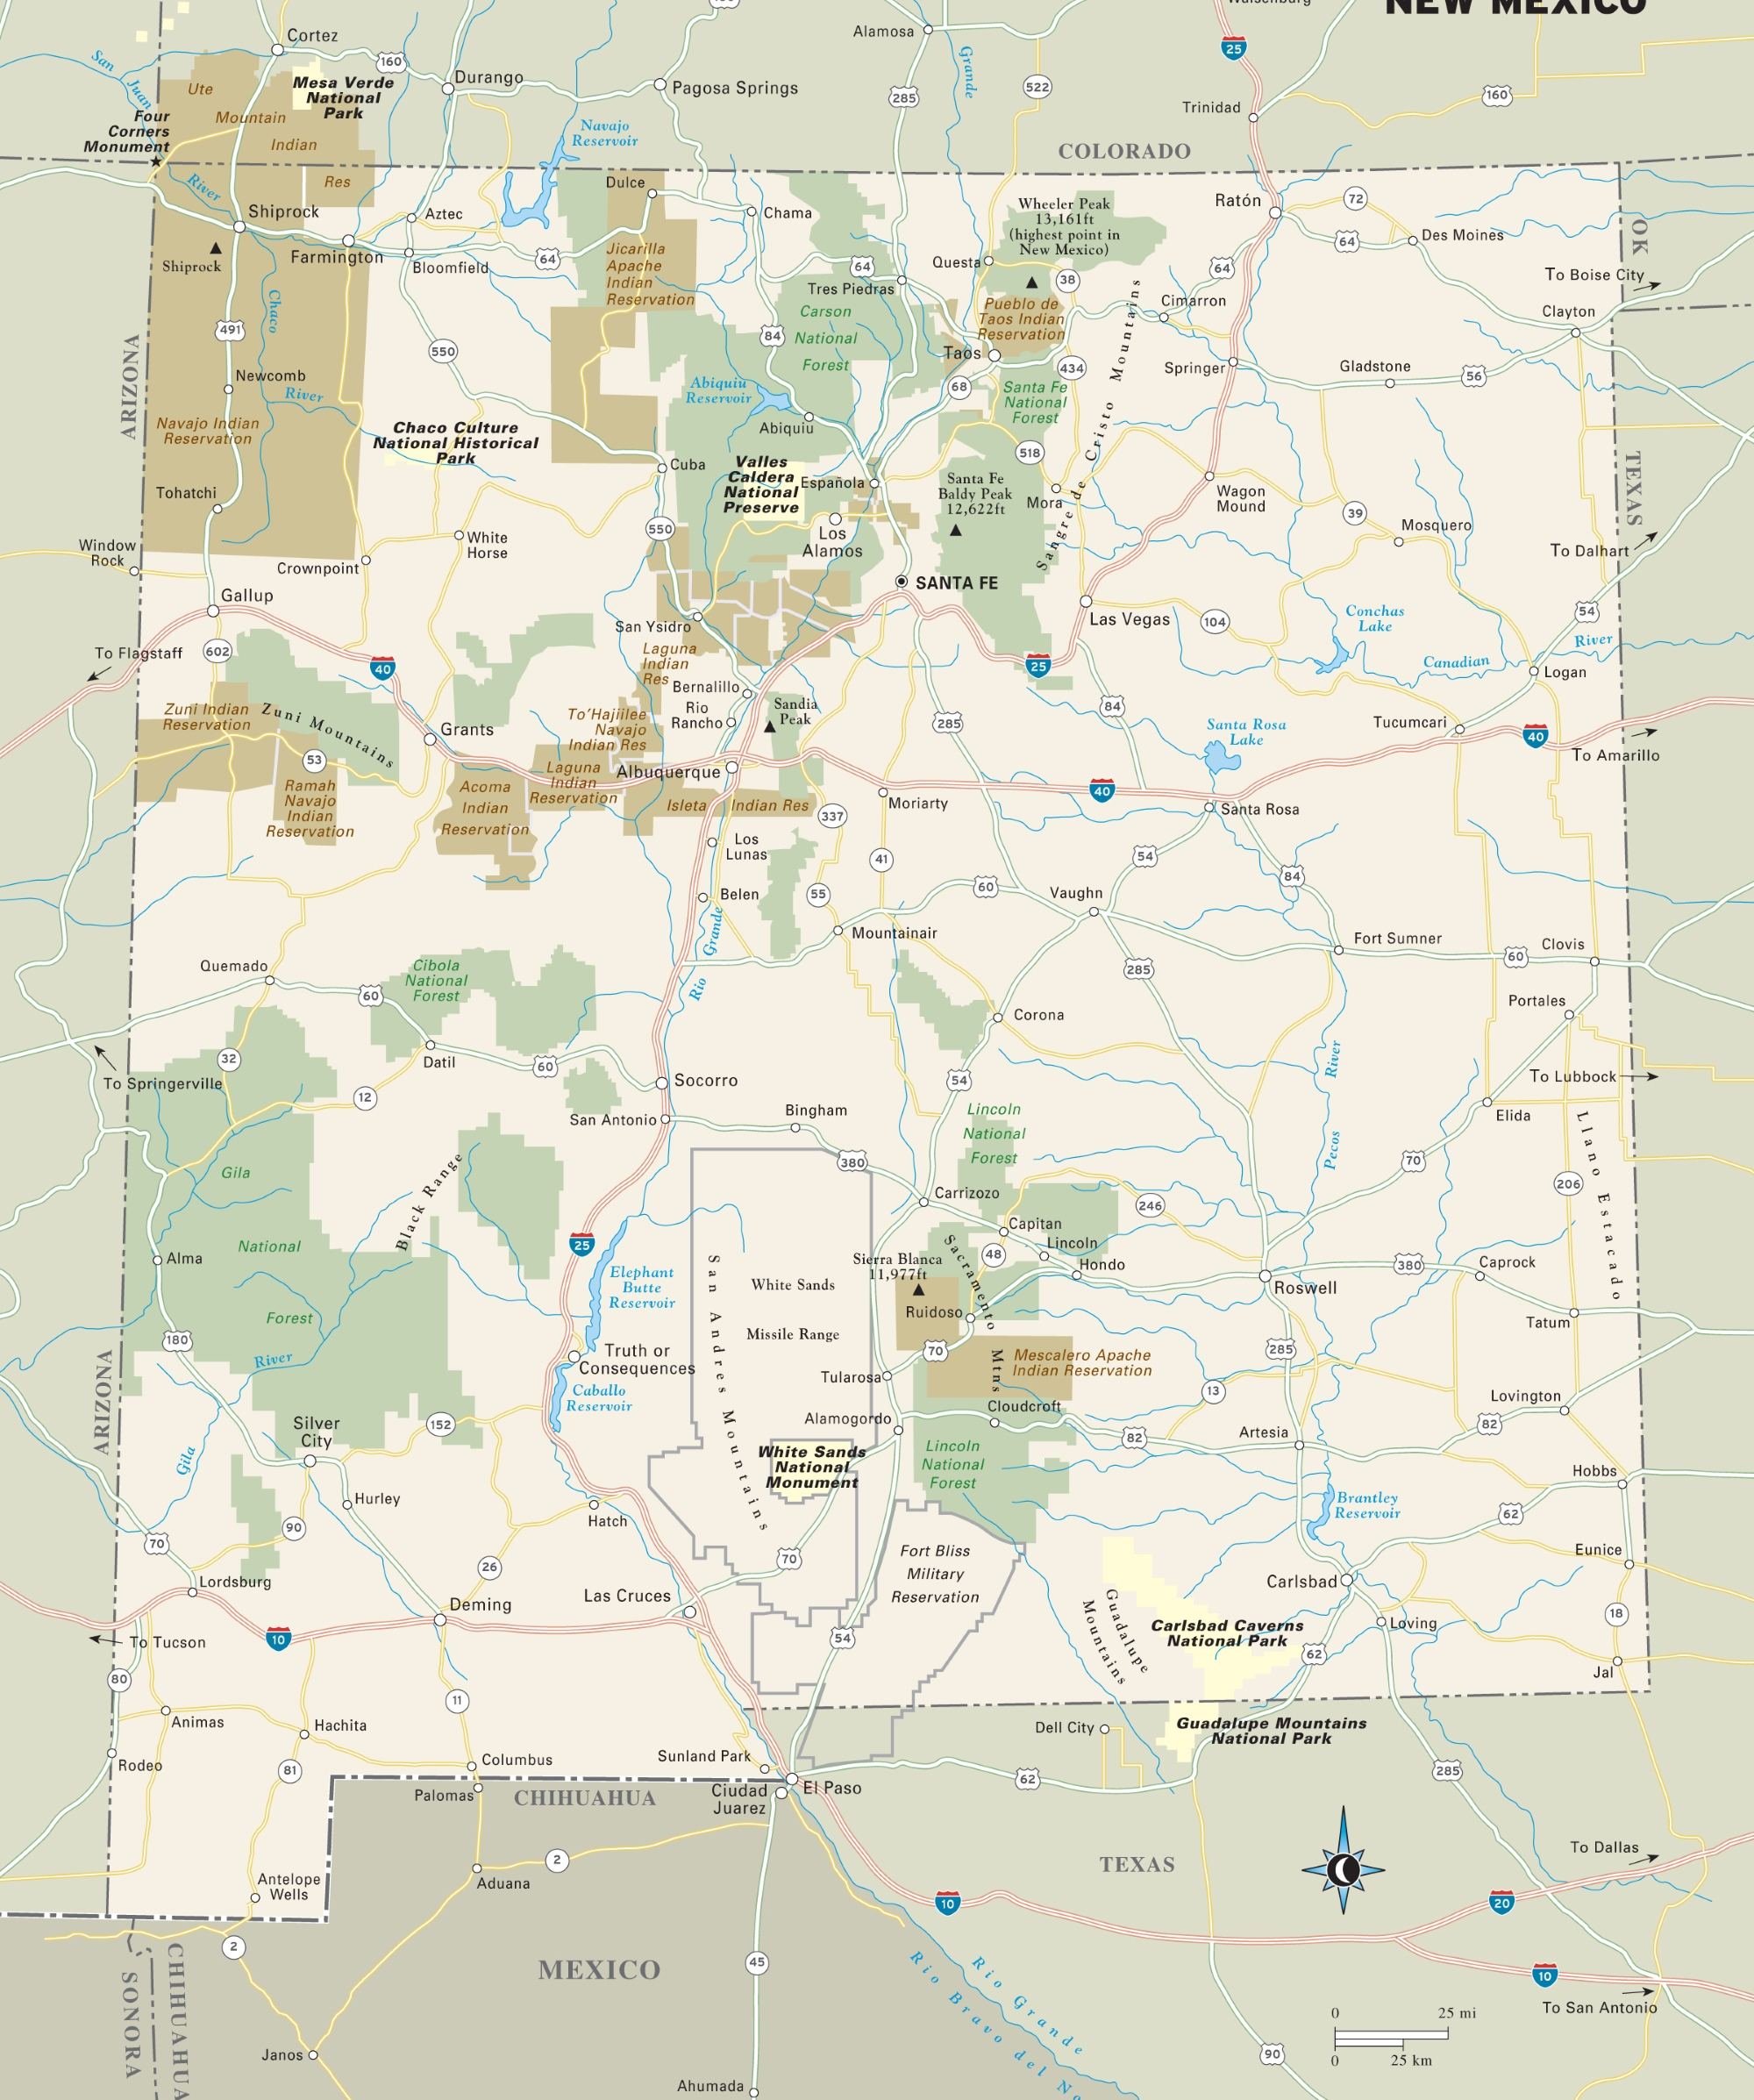 New Mexico national parks monuments and forests map